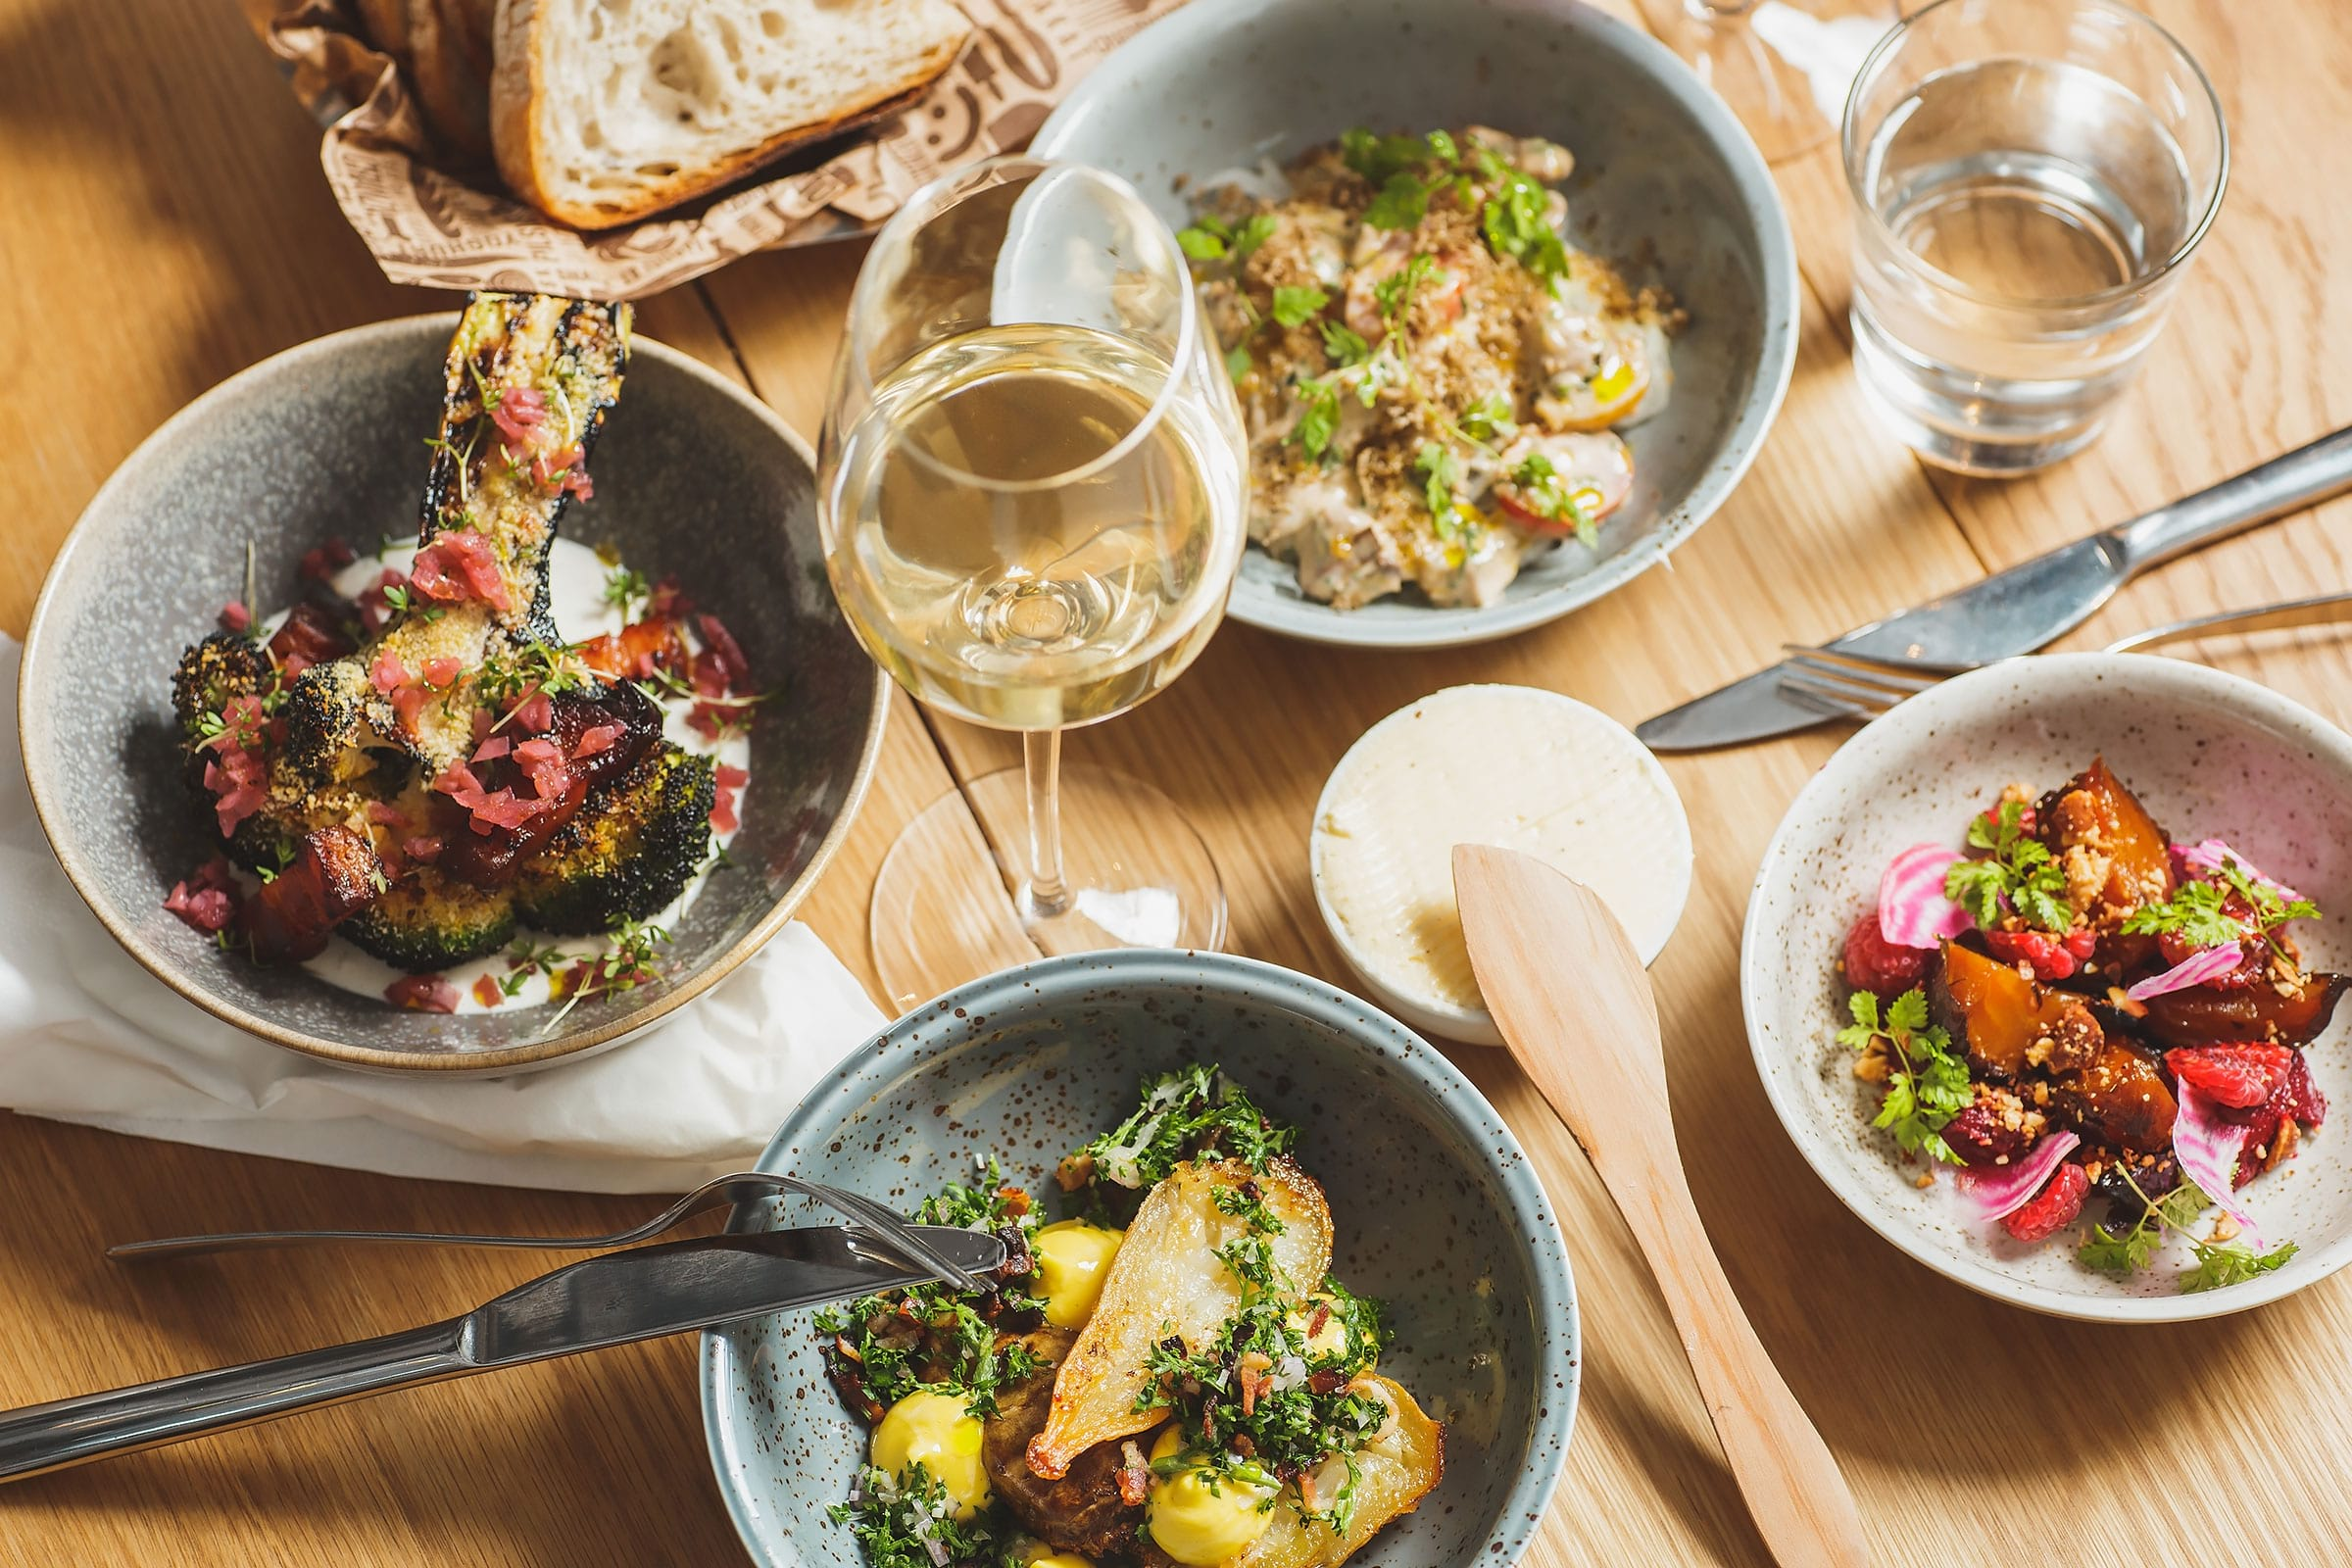 Stockholm restaurants with a focus on sustainability